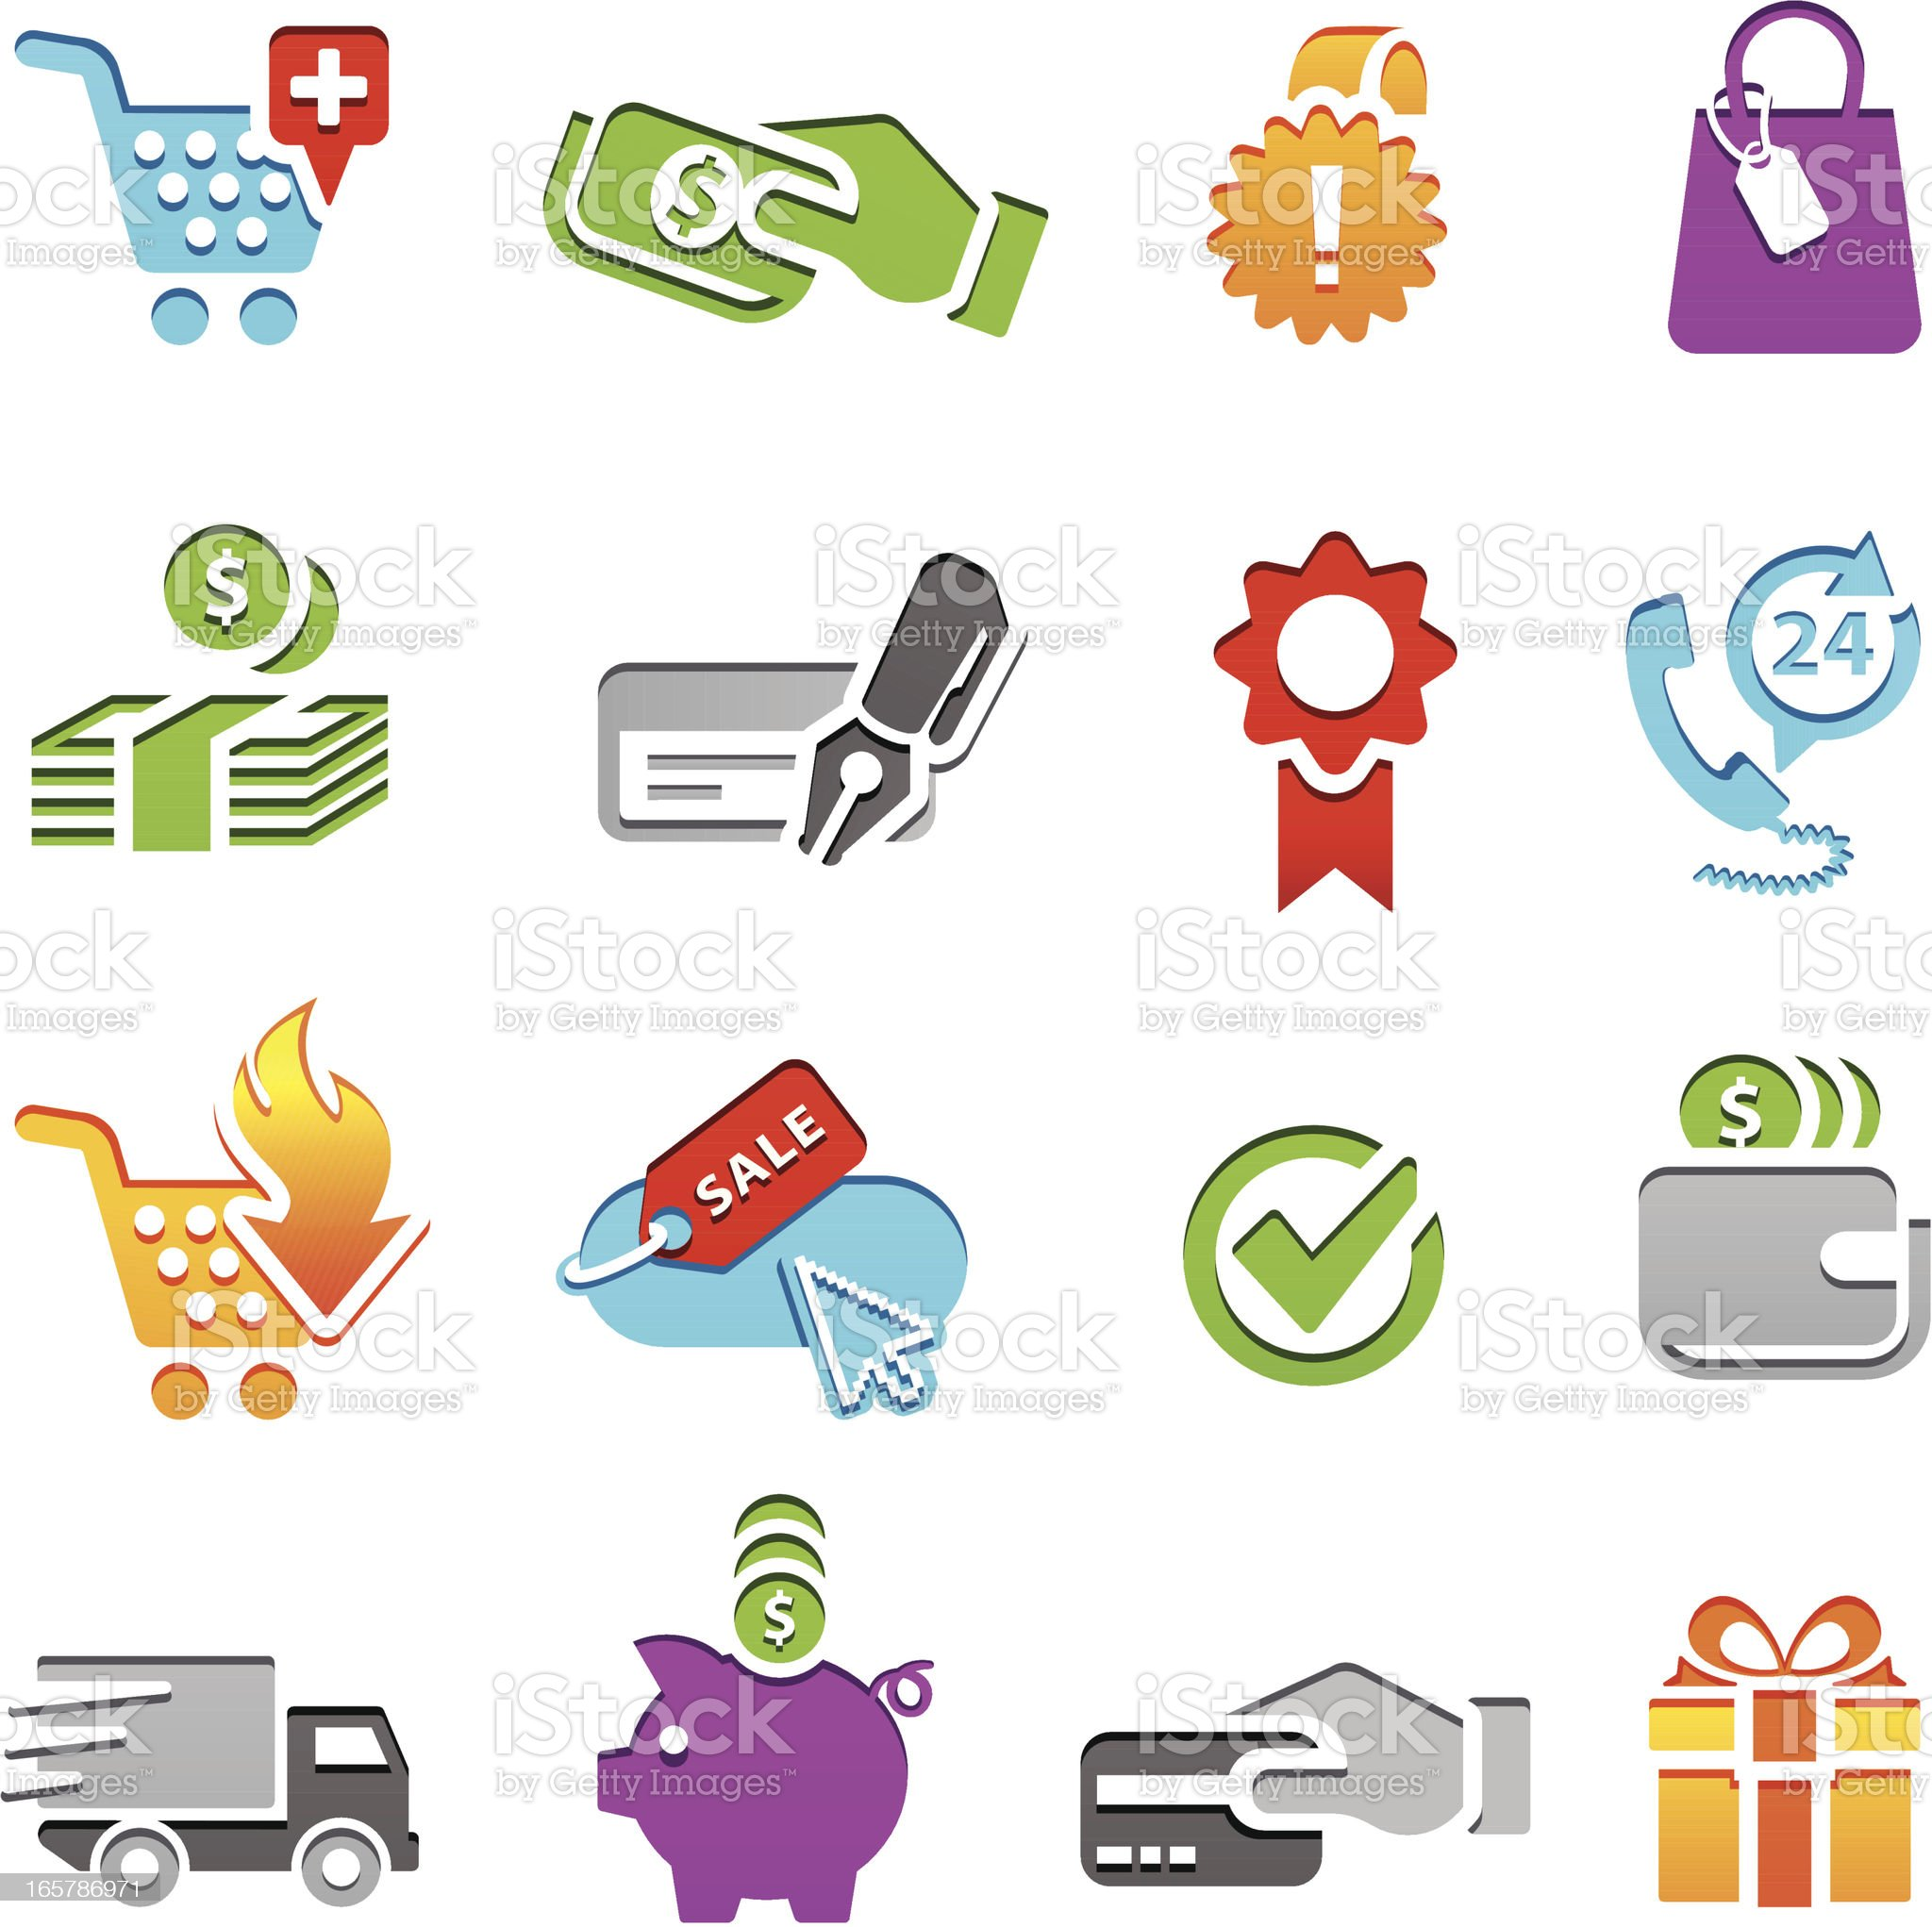 Shopping Icon Series royalty-free stock vector art